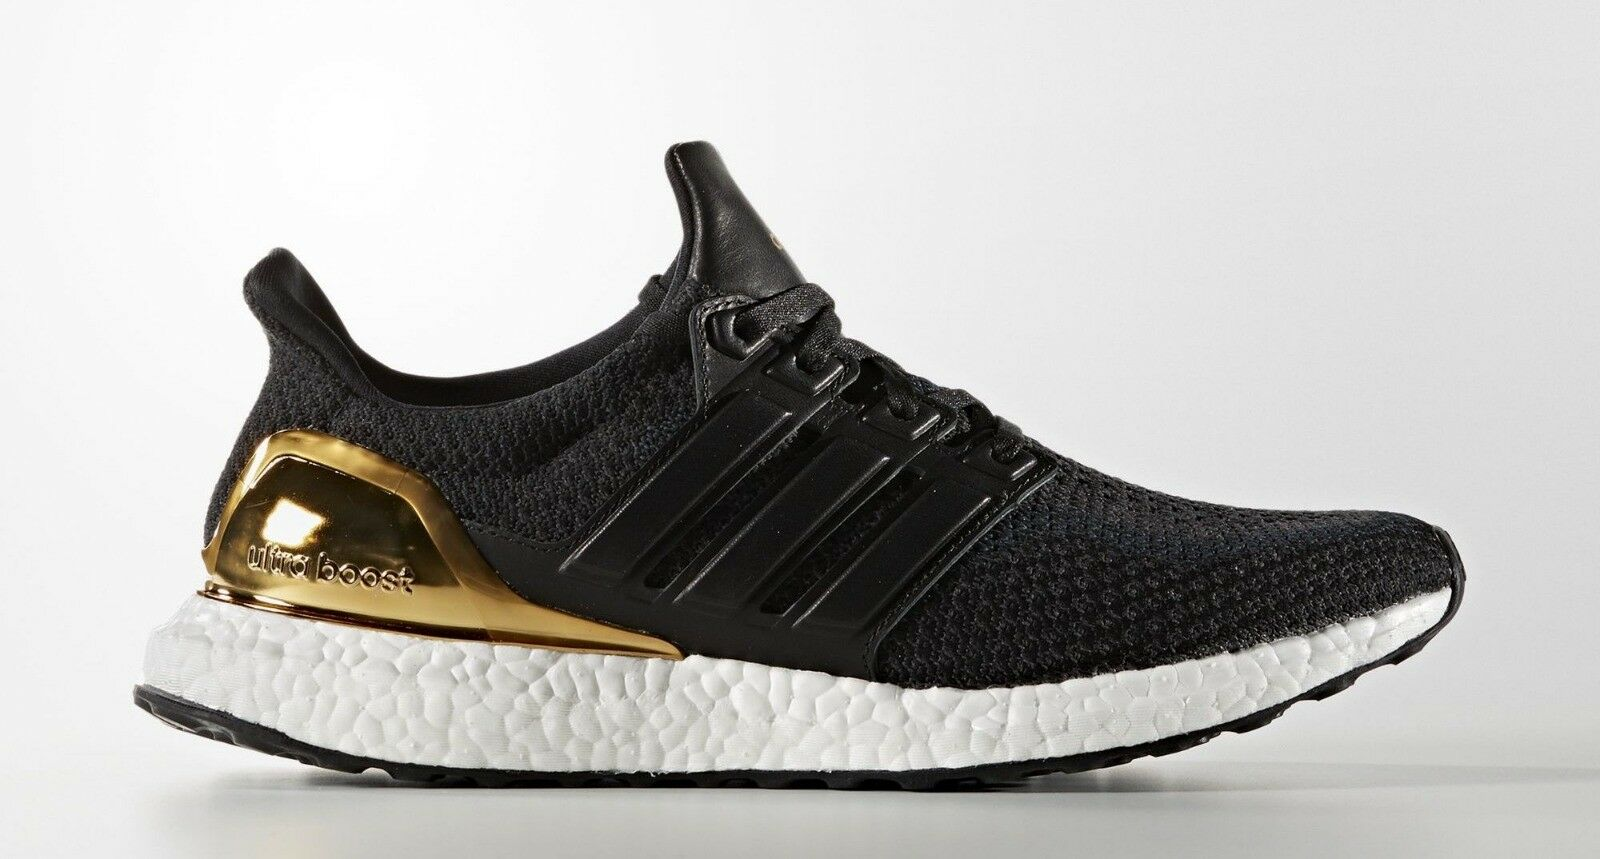 BNIB Adidas Ultra Boost 2.0 Limited gold Medal US 9 DS BB3929 Yeezy 350